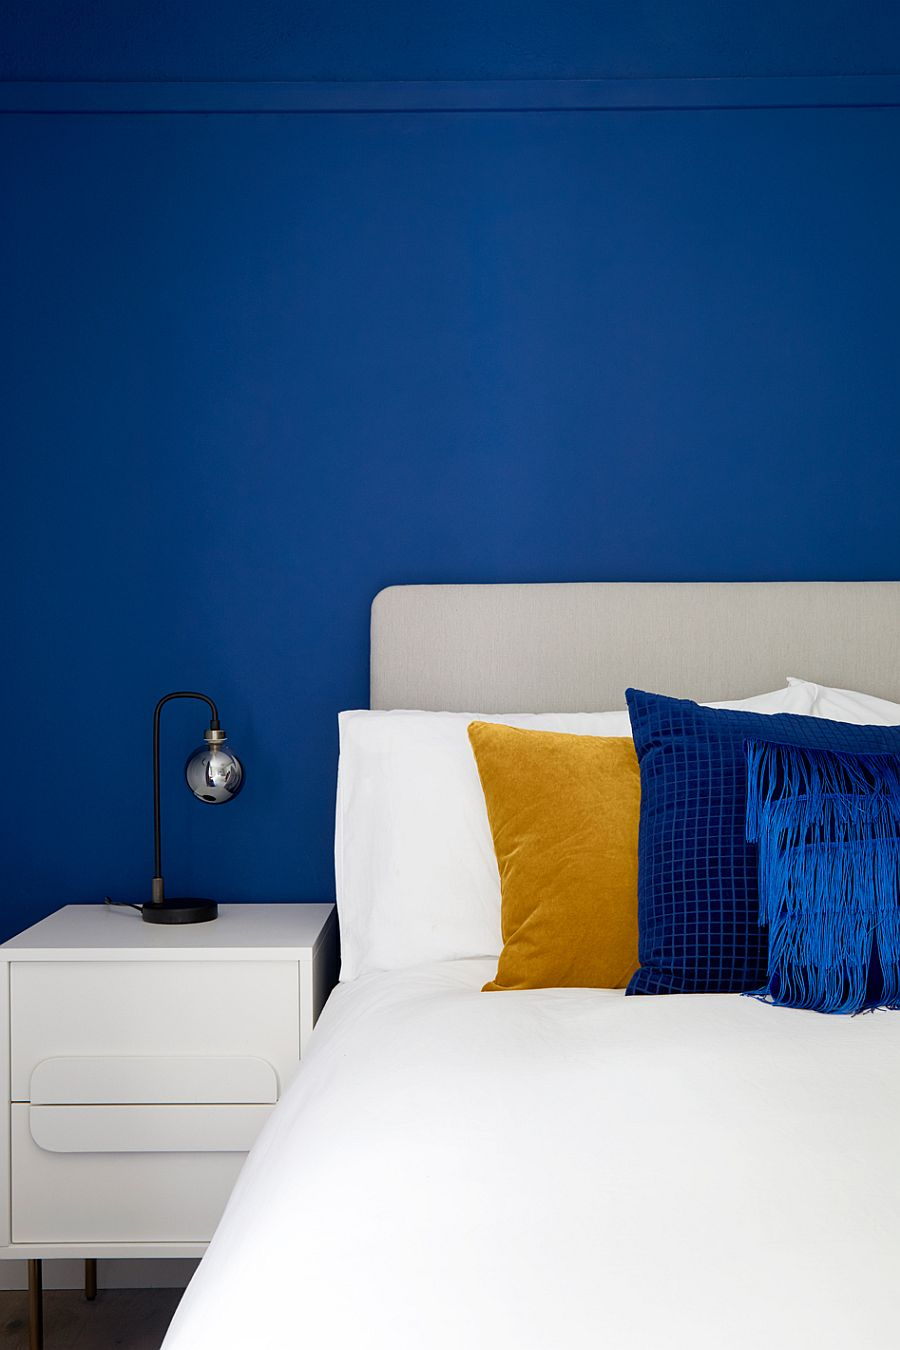 Modern and minimal bedside table lamp in a bedroom filled with plenty of blue